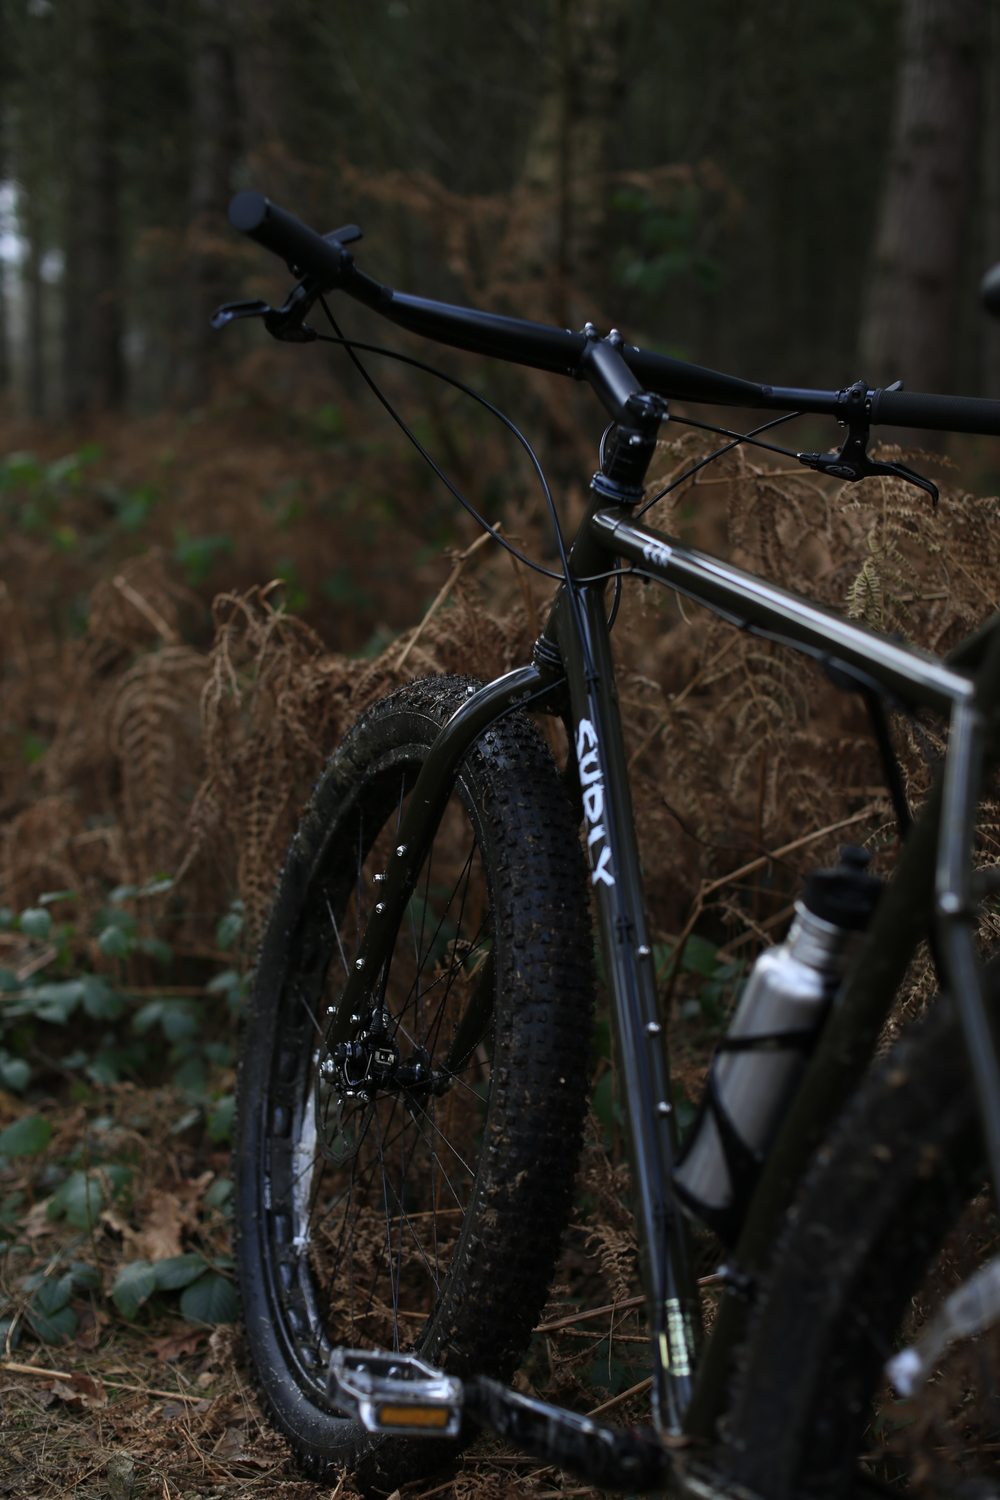 surly, surly ecr, adventure, bikepacking, blog, travel, cycling, cycle gear, review